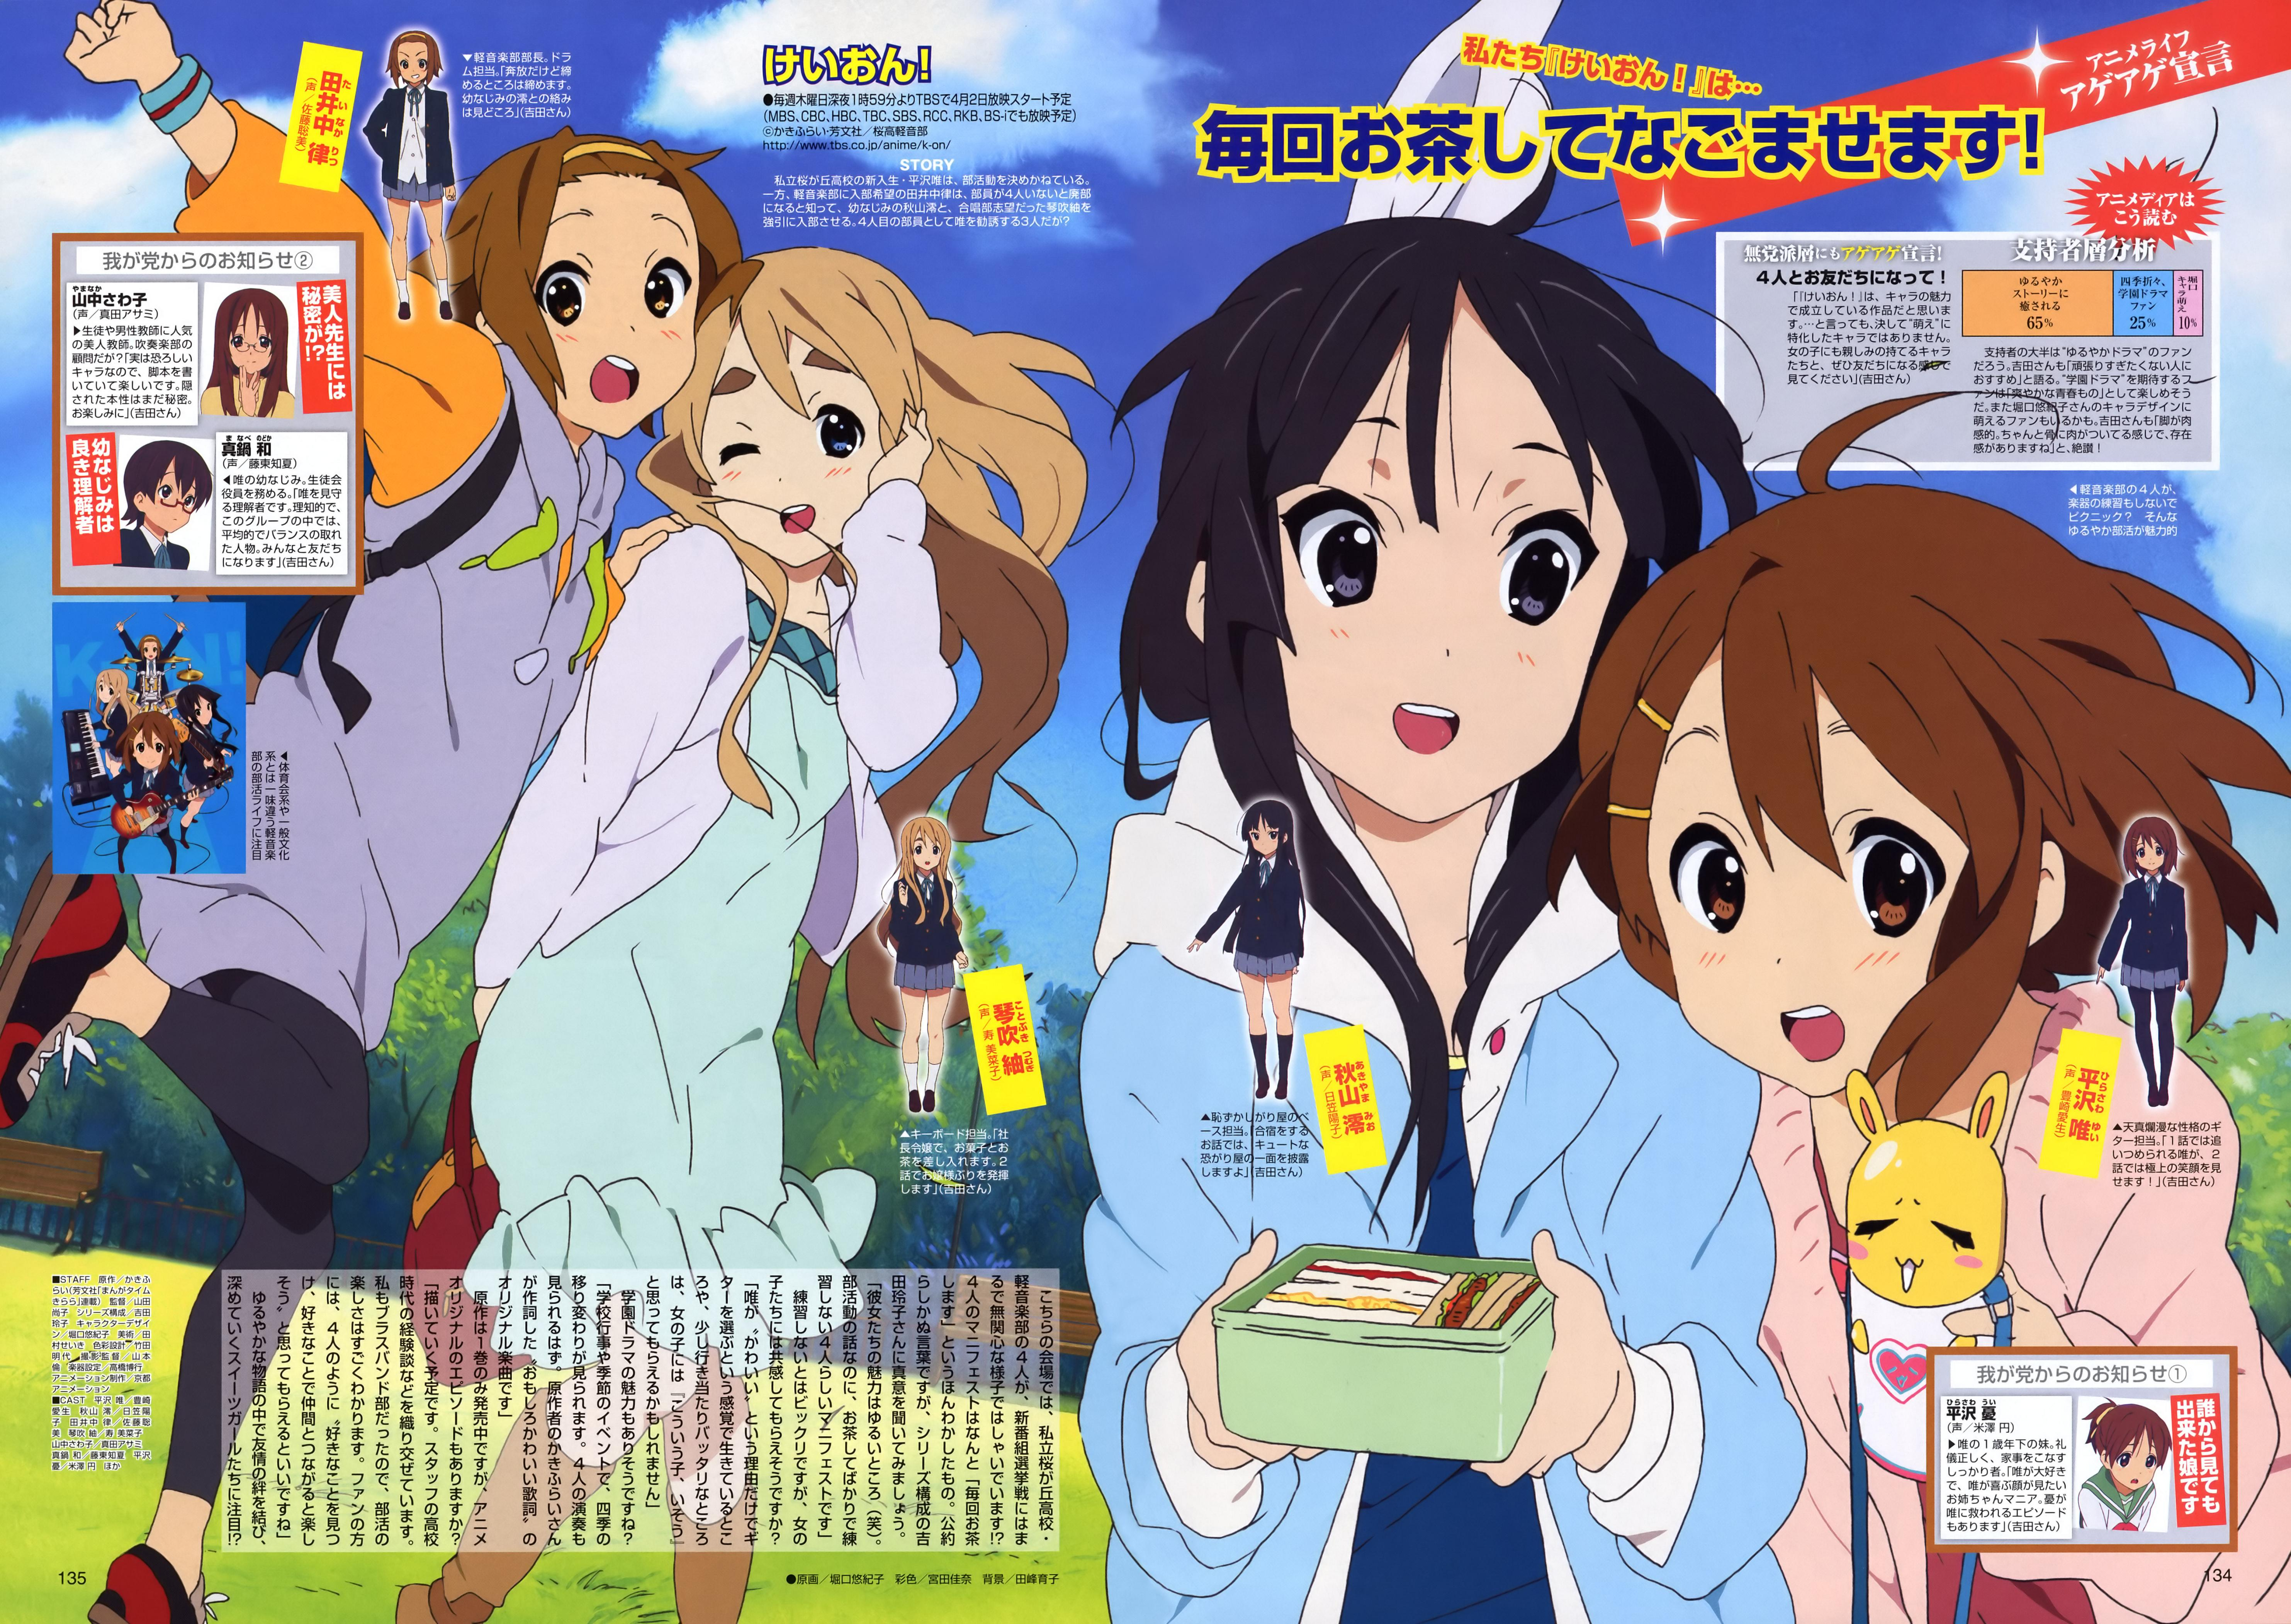 Top 20 Anime You Should Watch on Your Last Day Alive K-ON